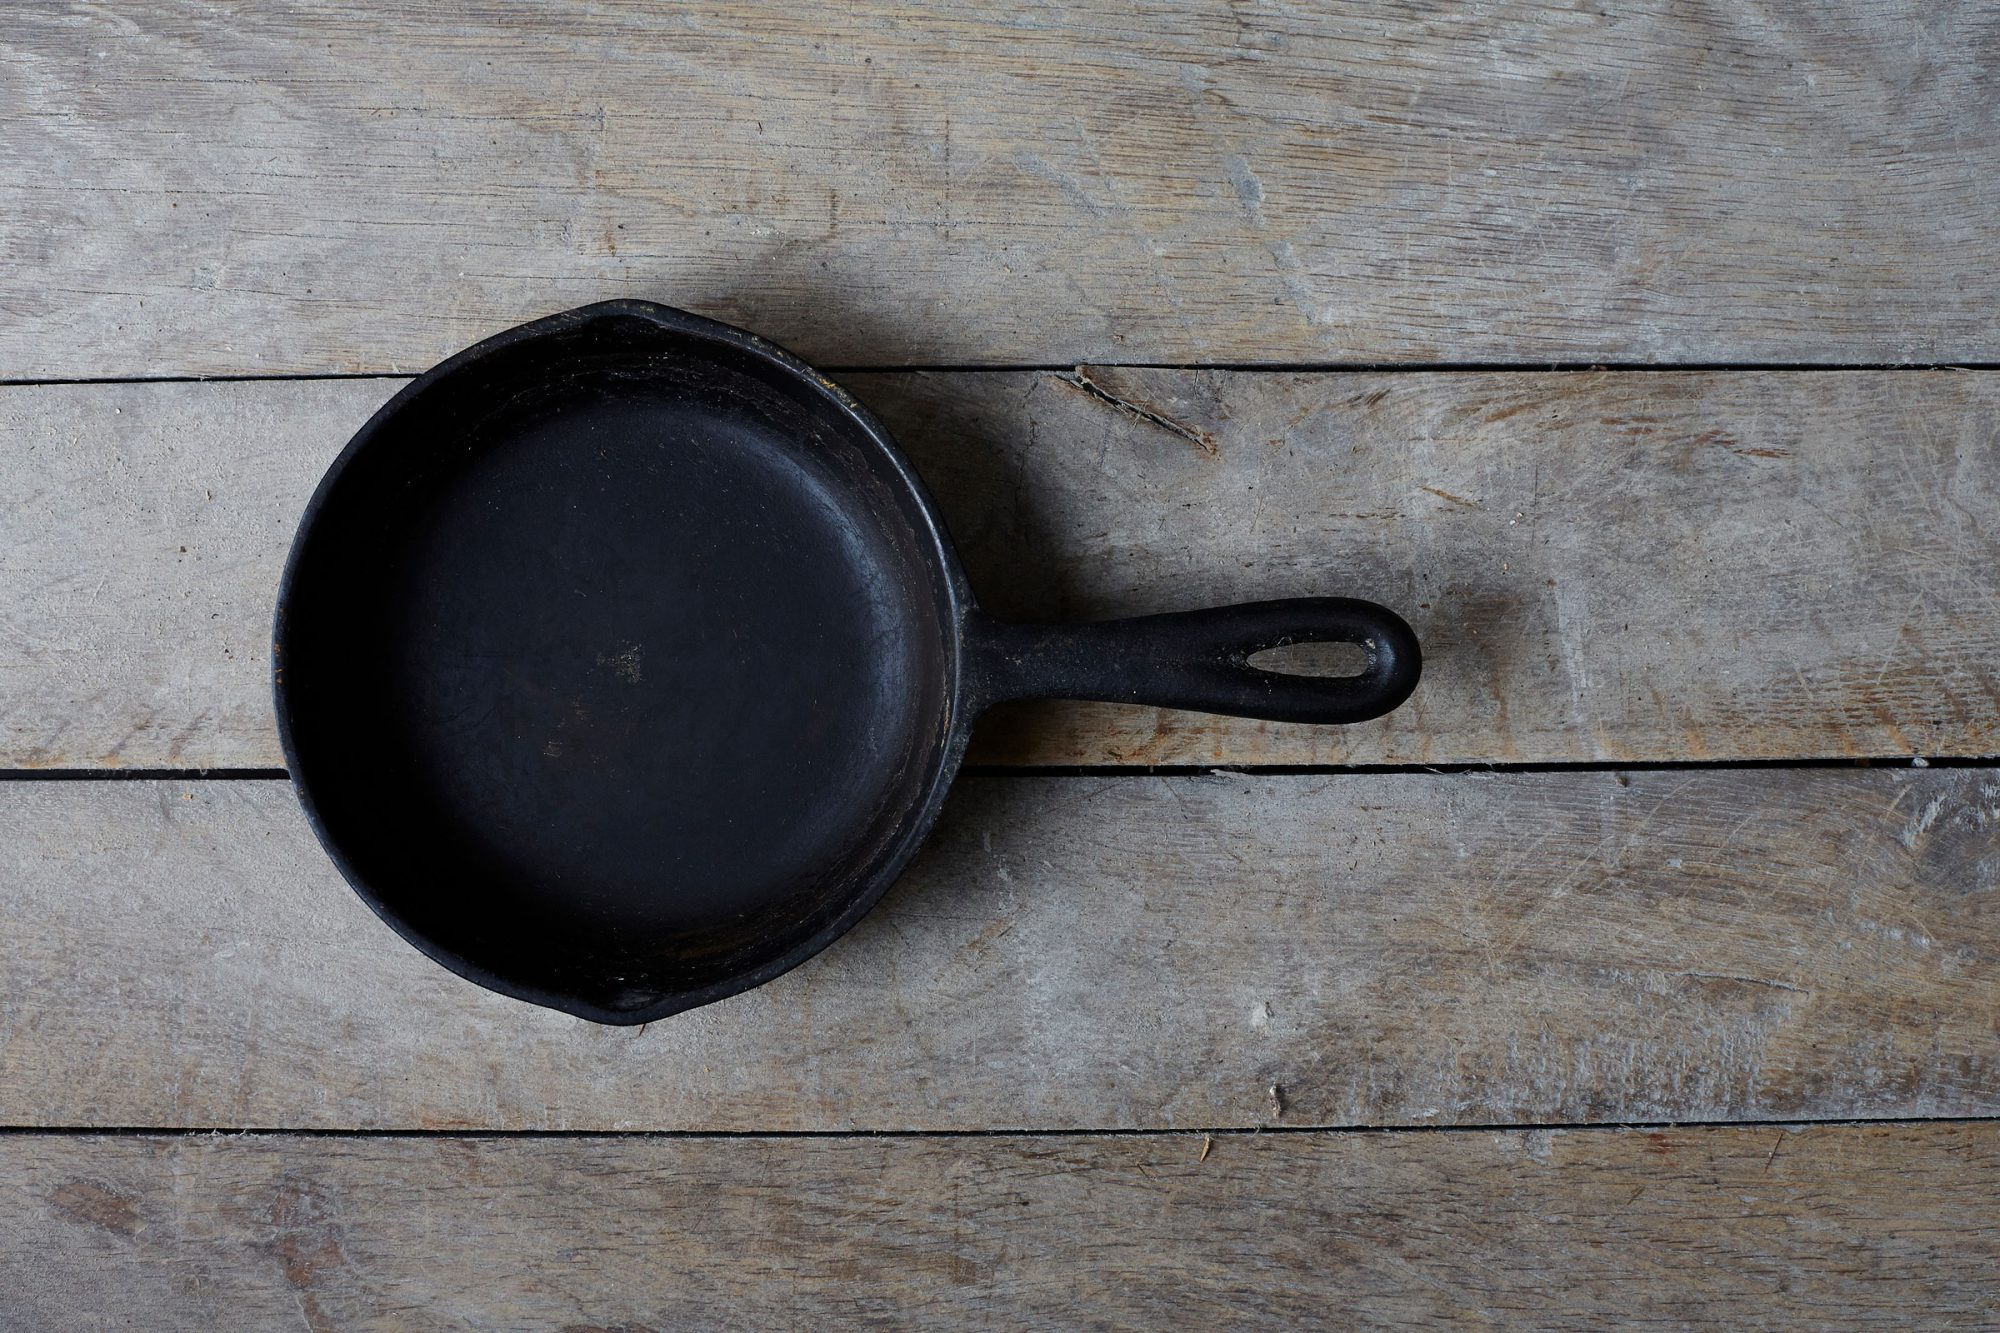 Cast Iron Skillet on Wood Surface